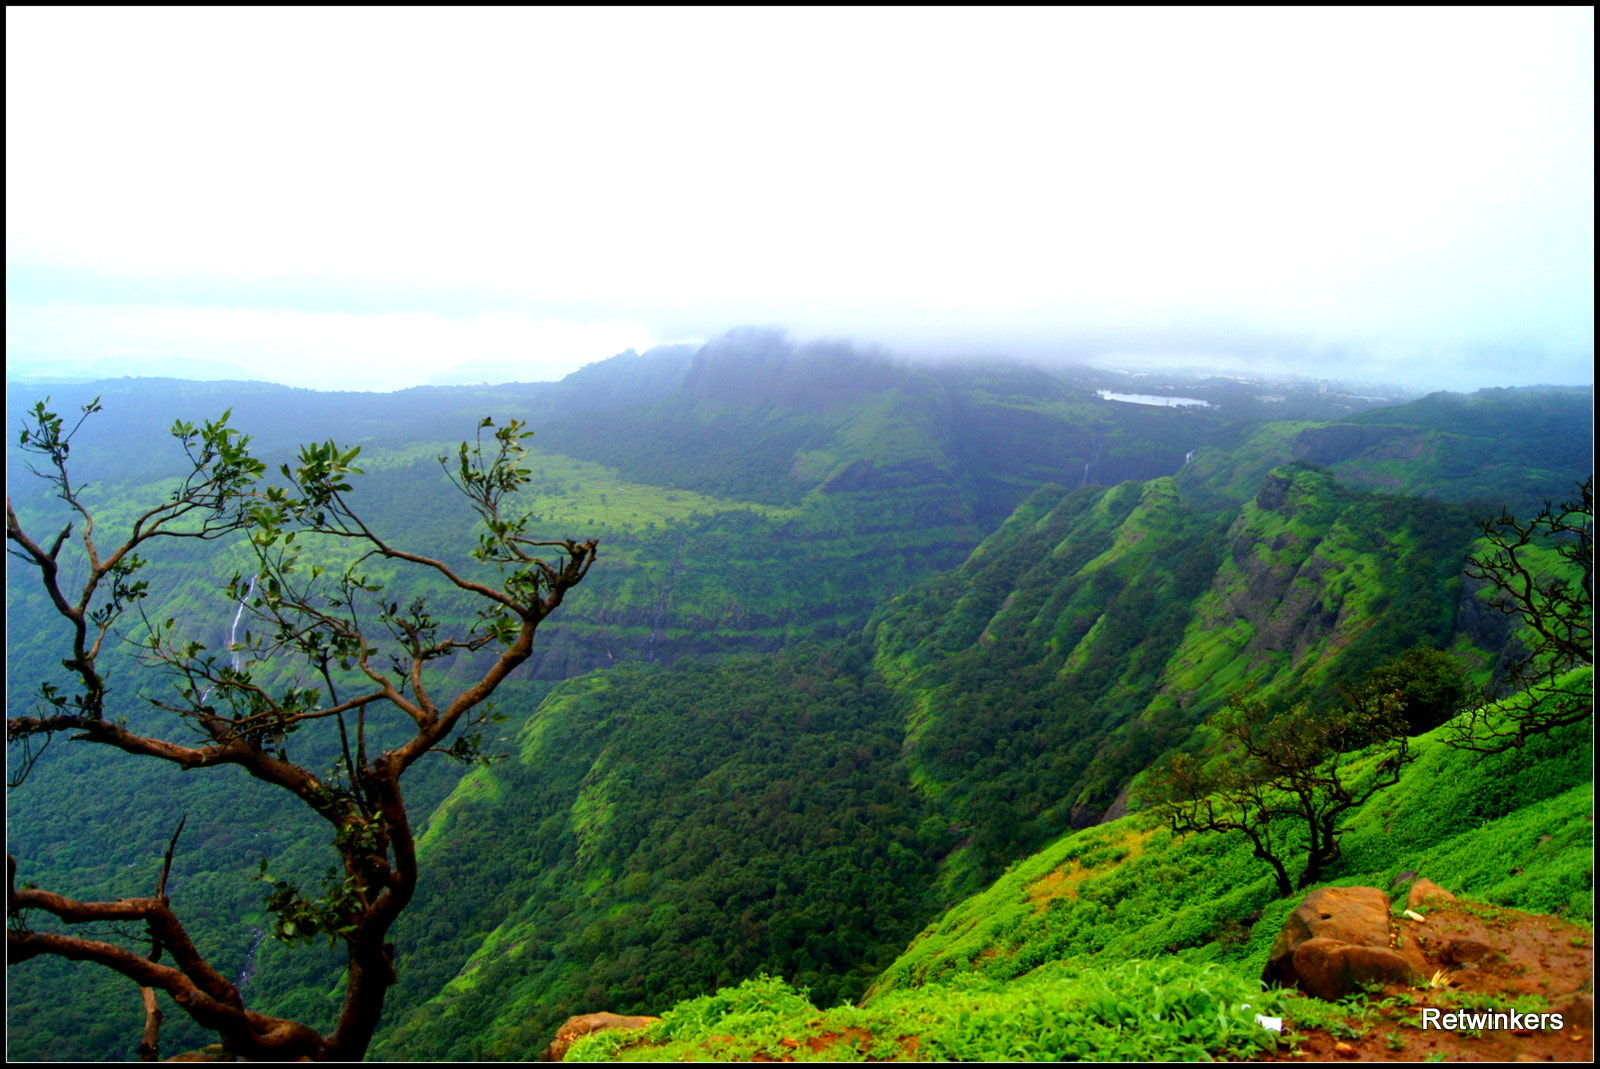 Photograph Lonavala by Sneha Sathiyanarayanan on 500px